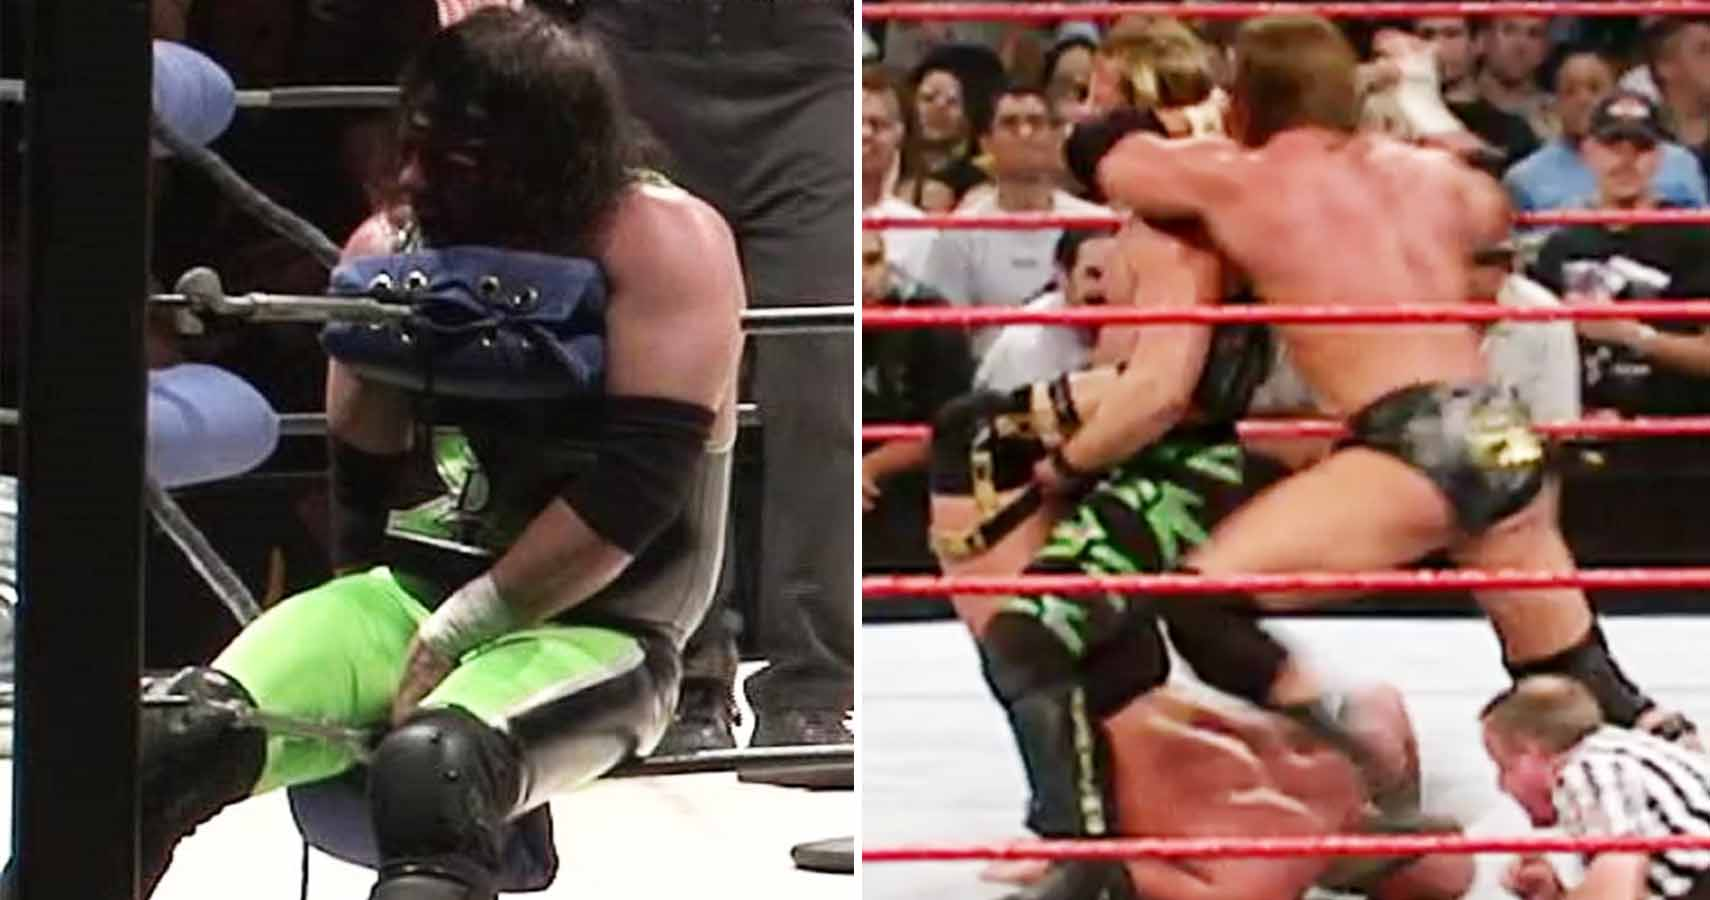 times a simple wrestling move went horribly wrong